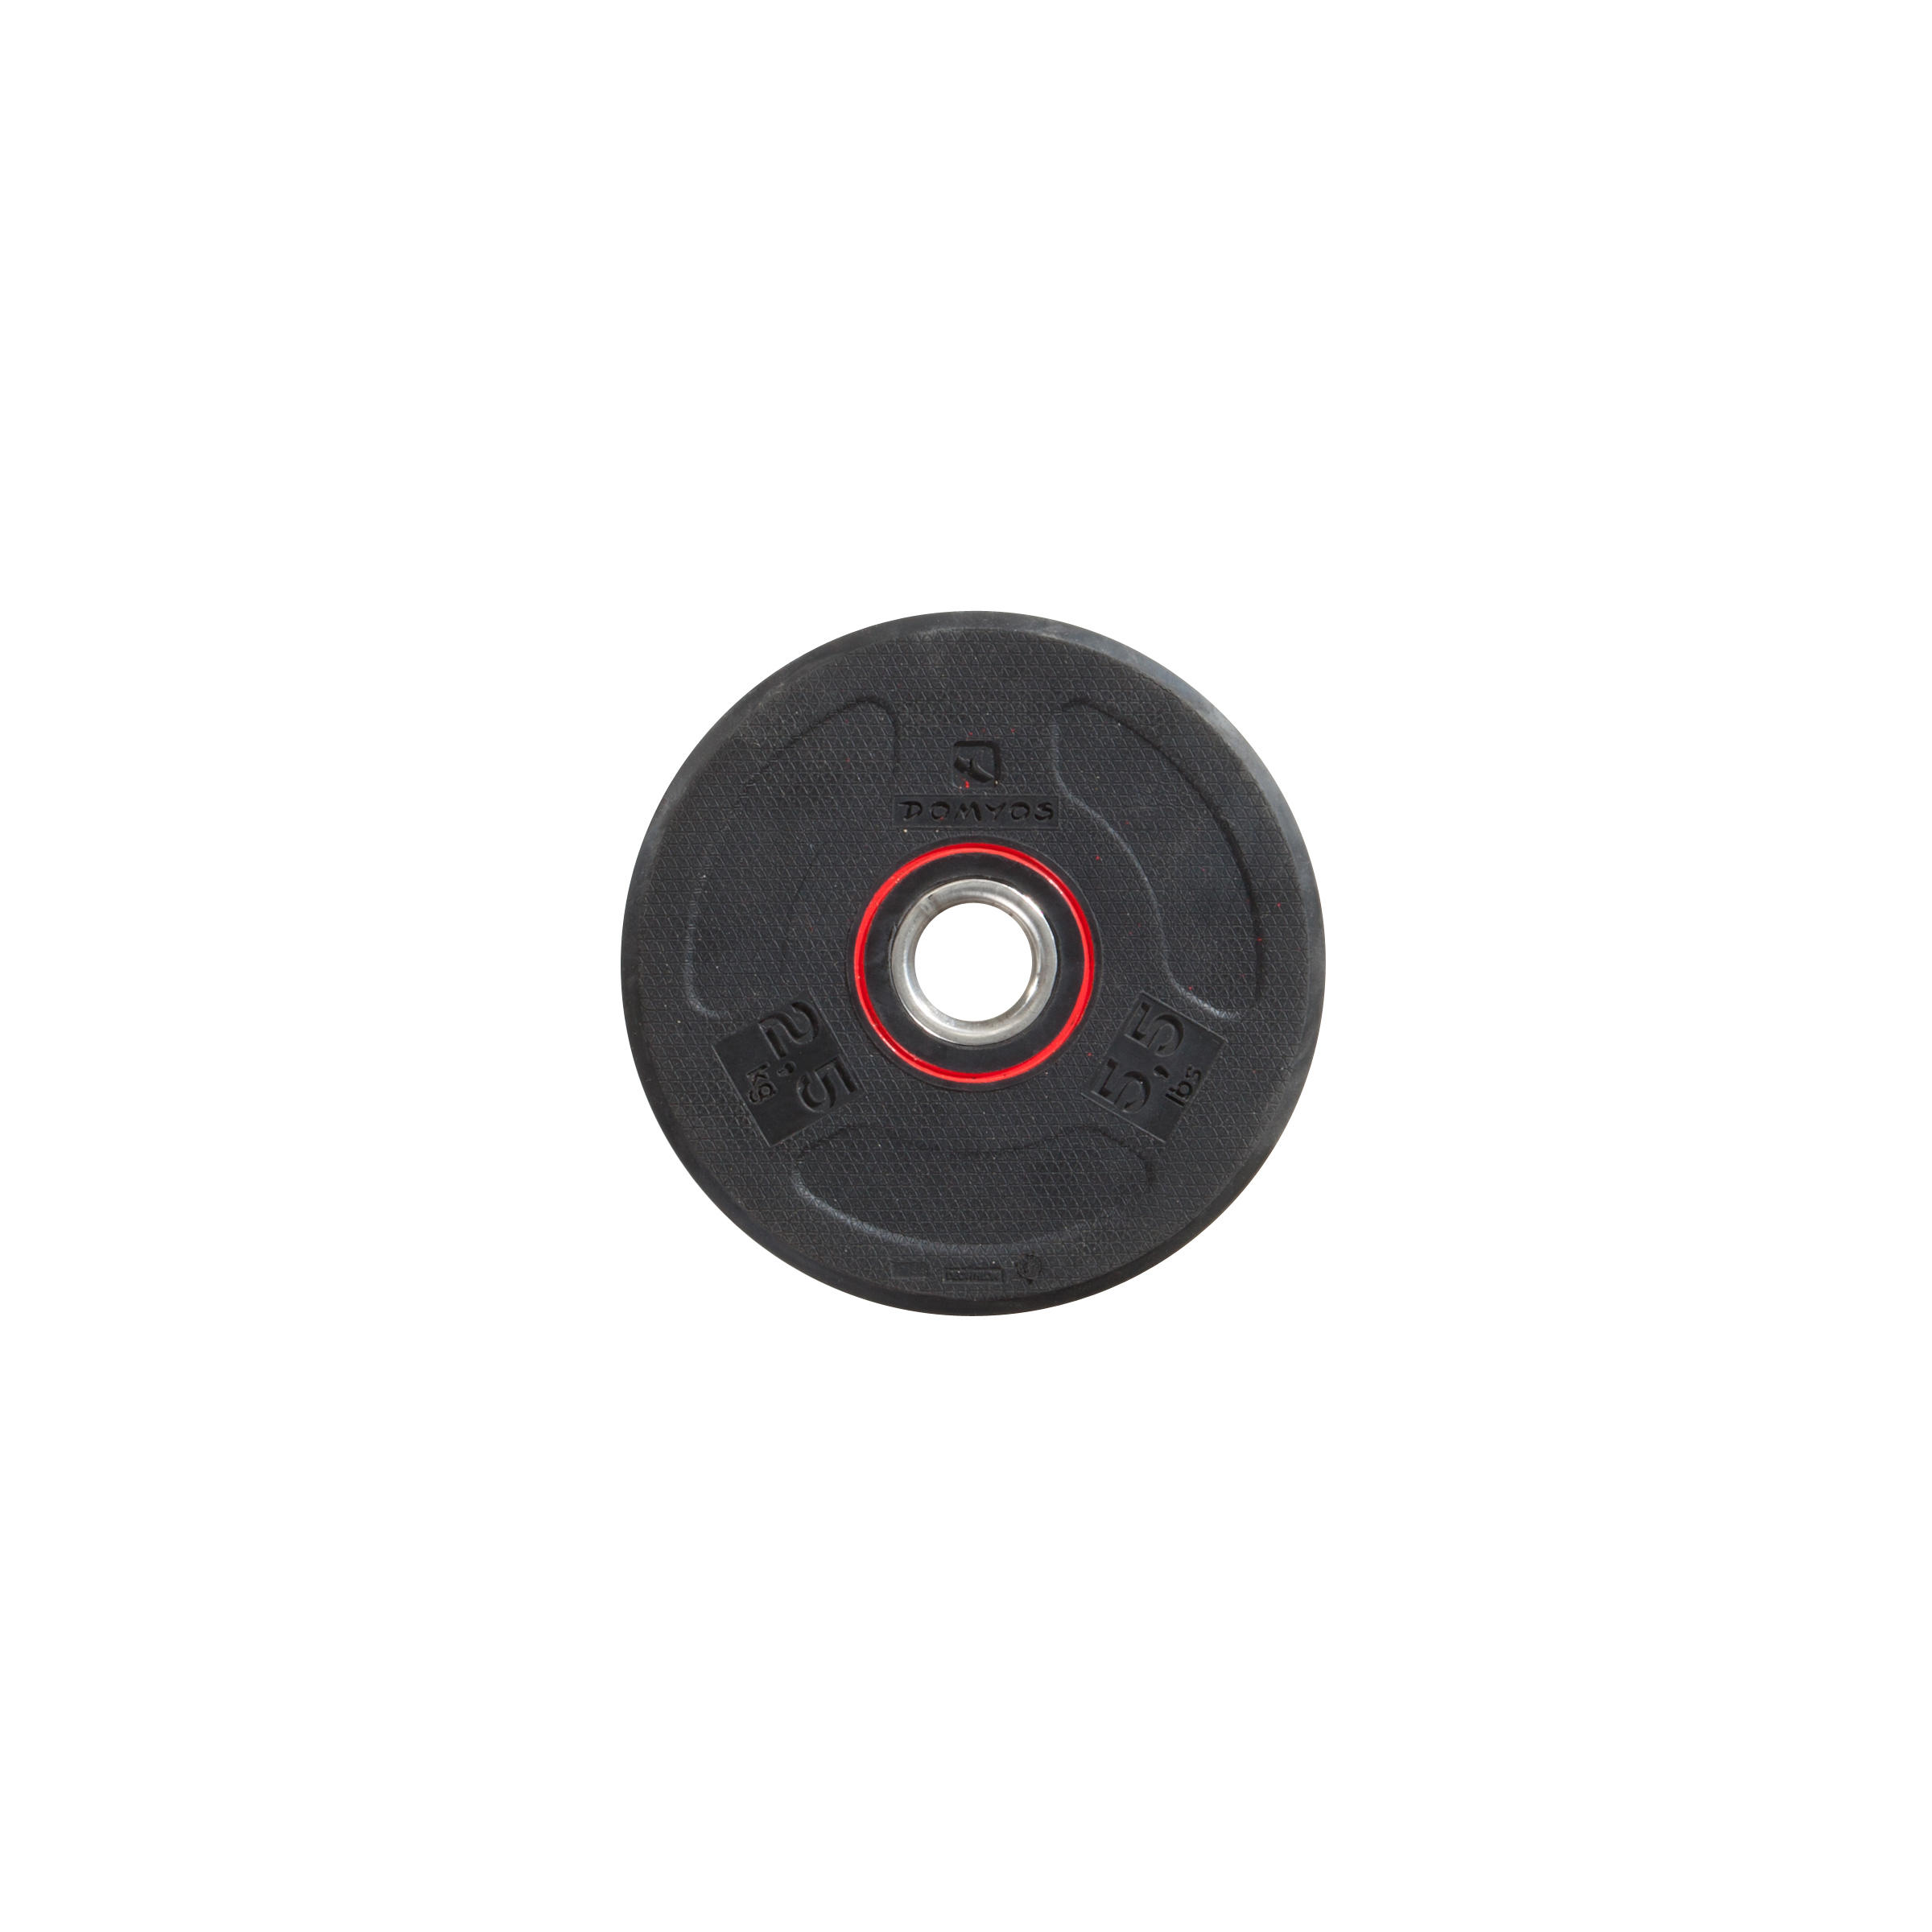 Rubber Weight Plate 28 mm - 2.5 kg